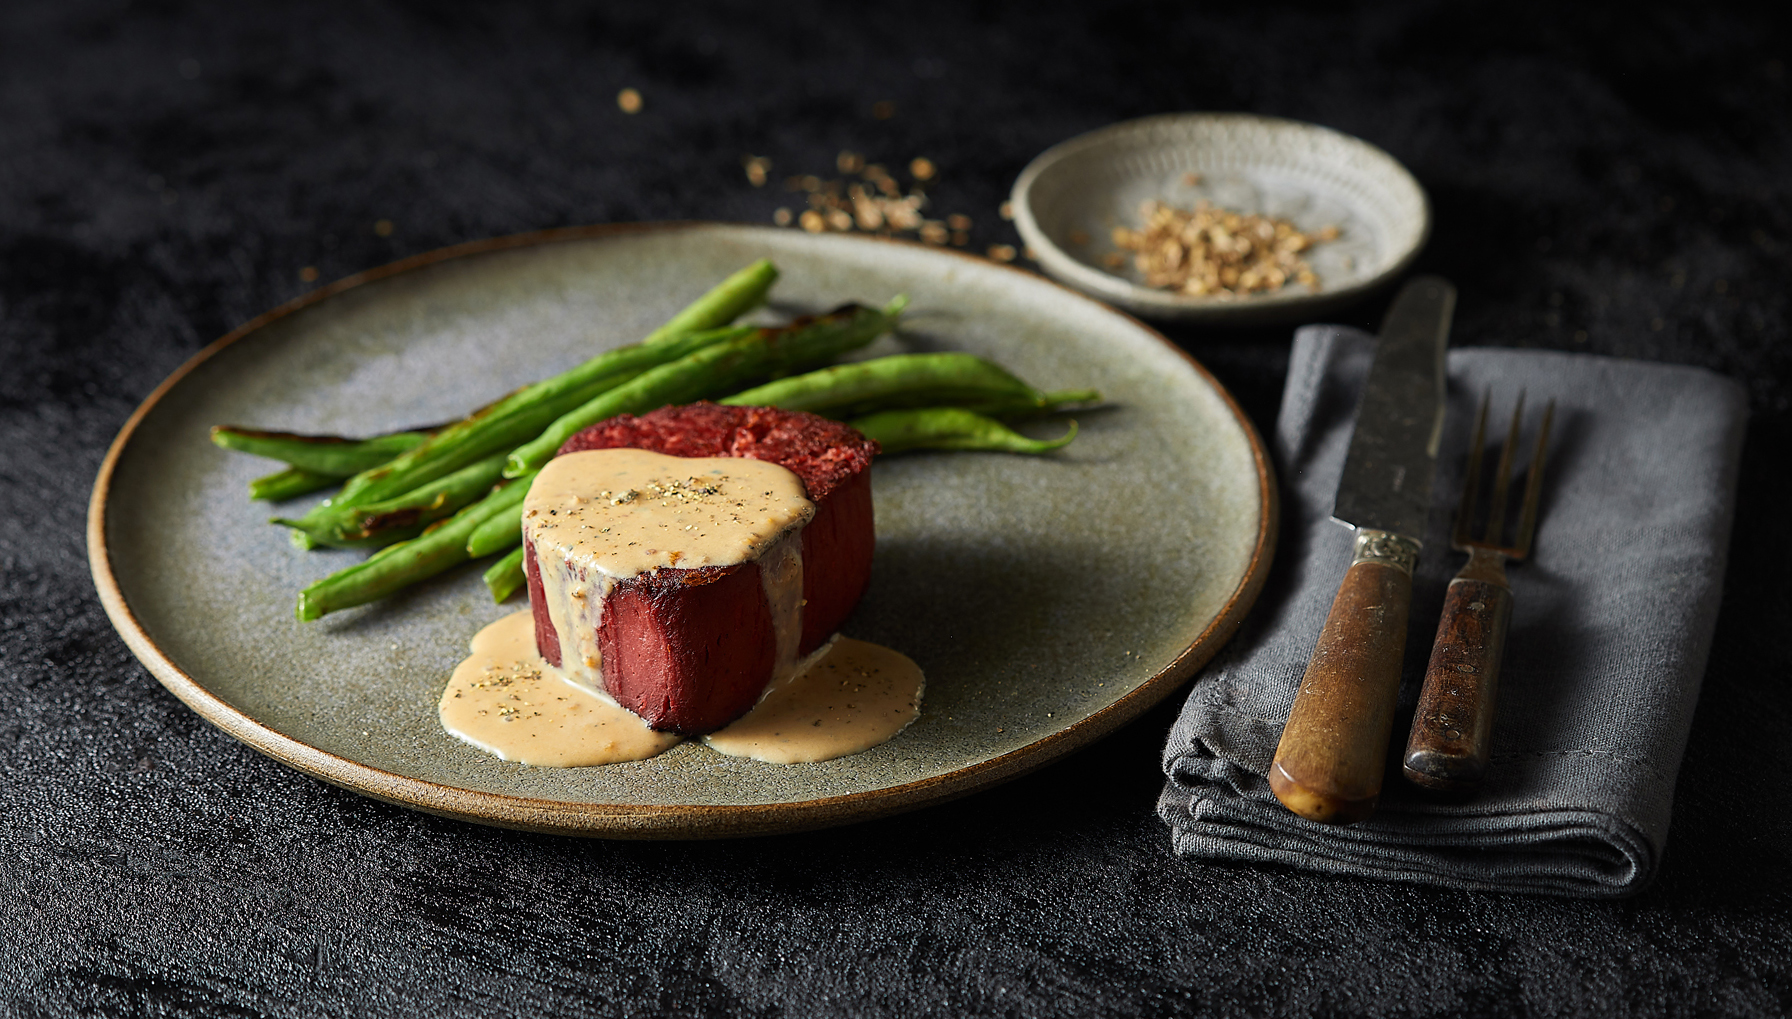 3D Printed Vegan Steak Coming to Market in 2021